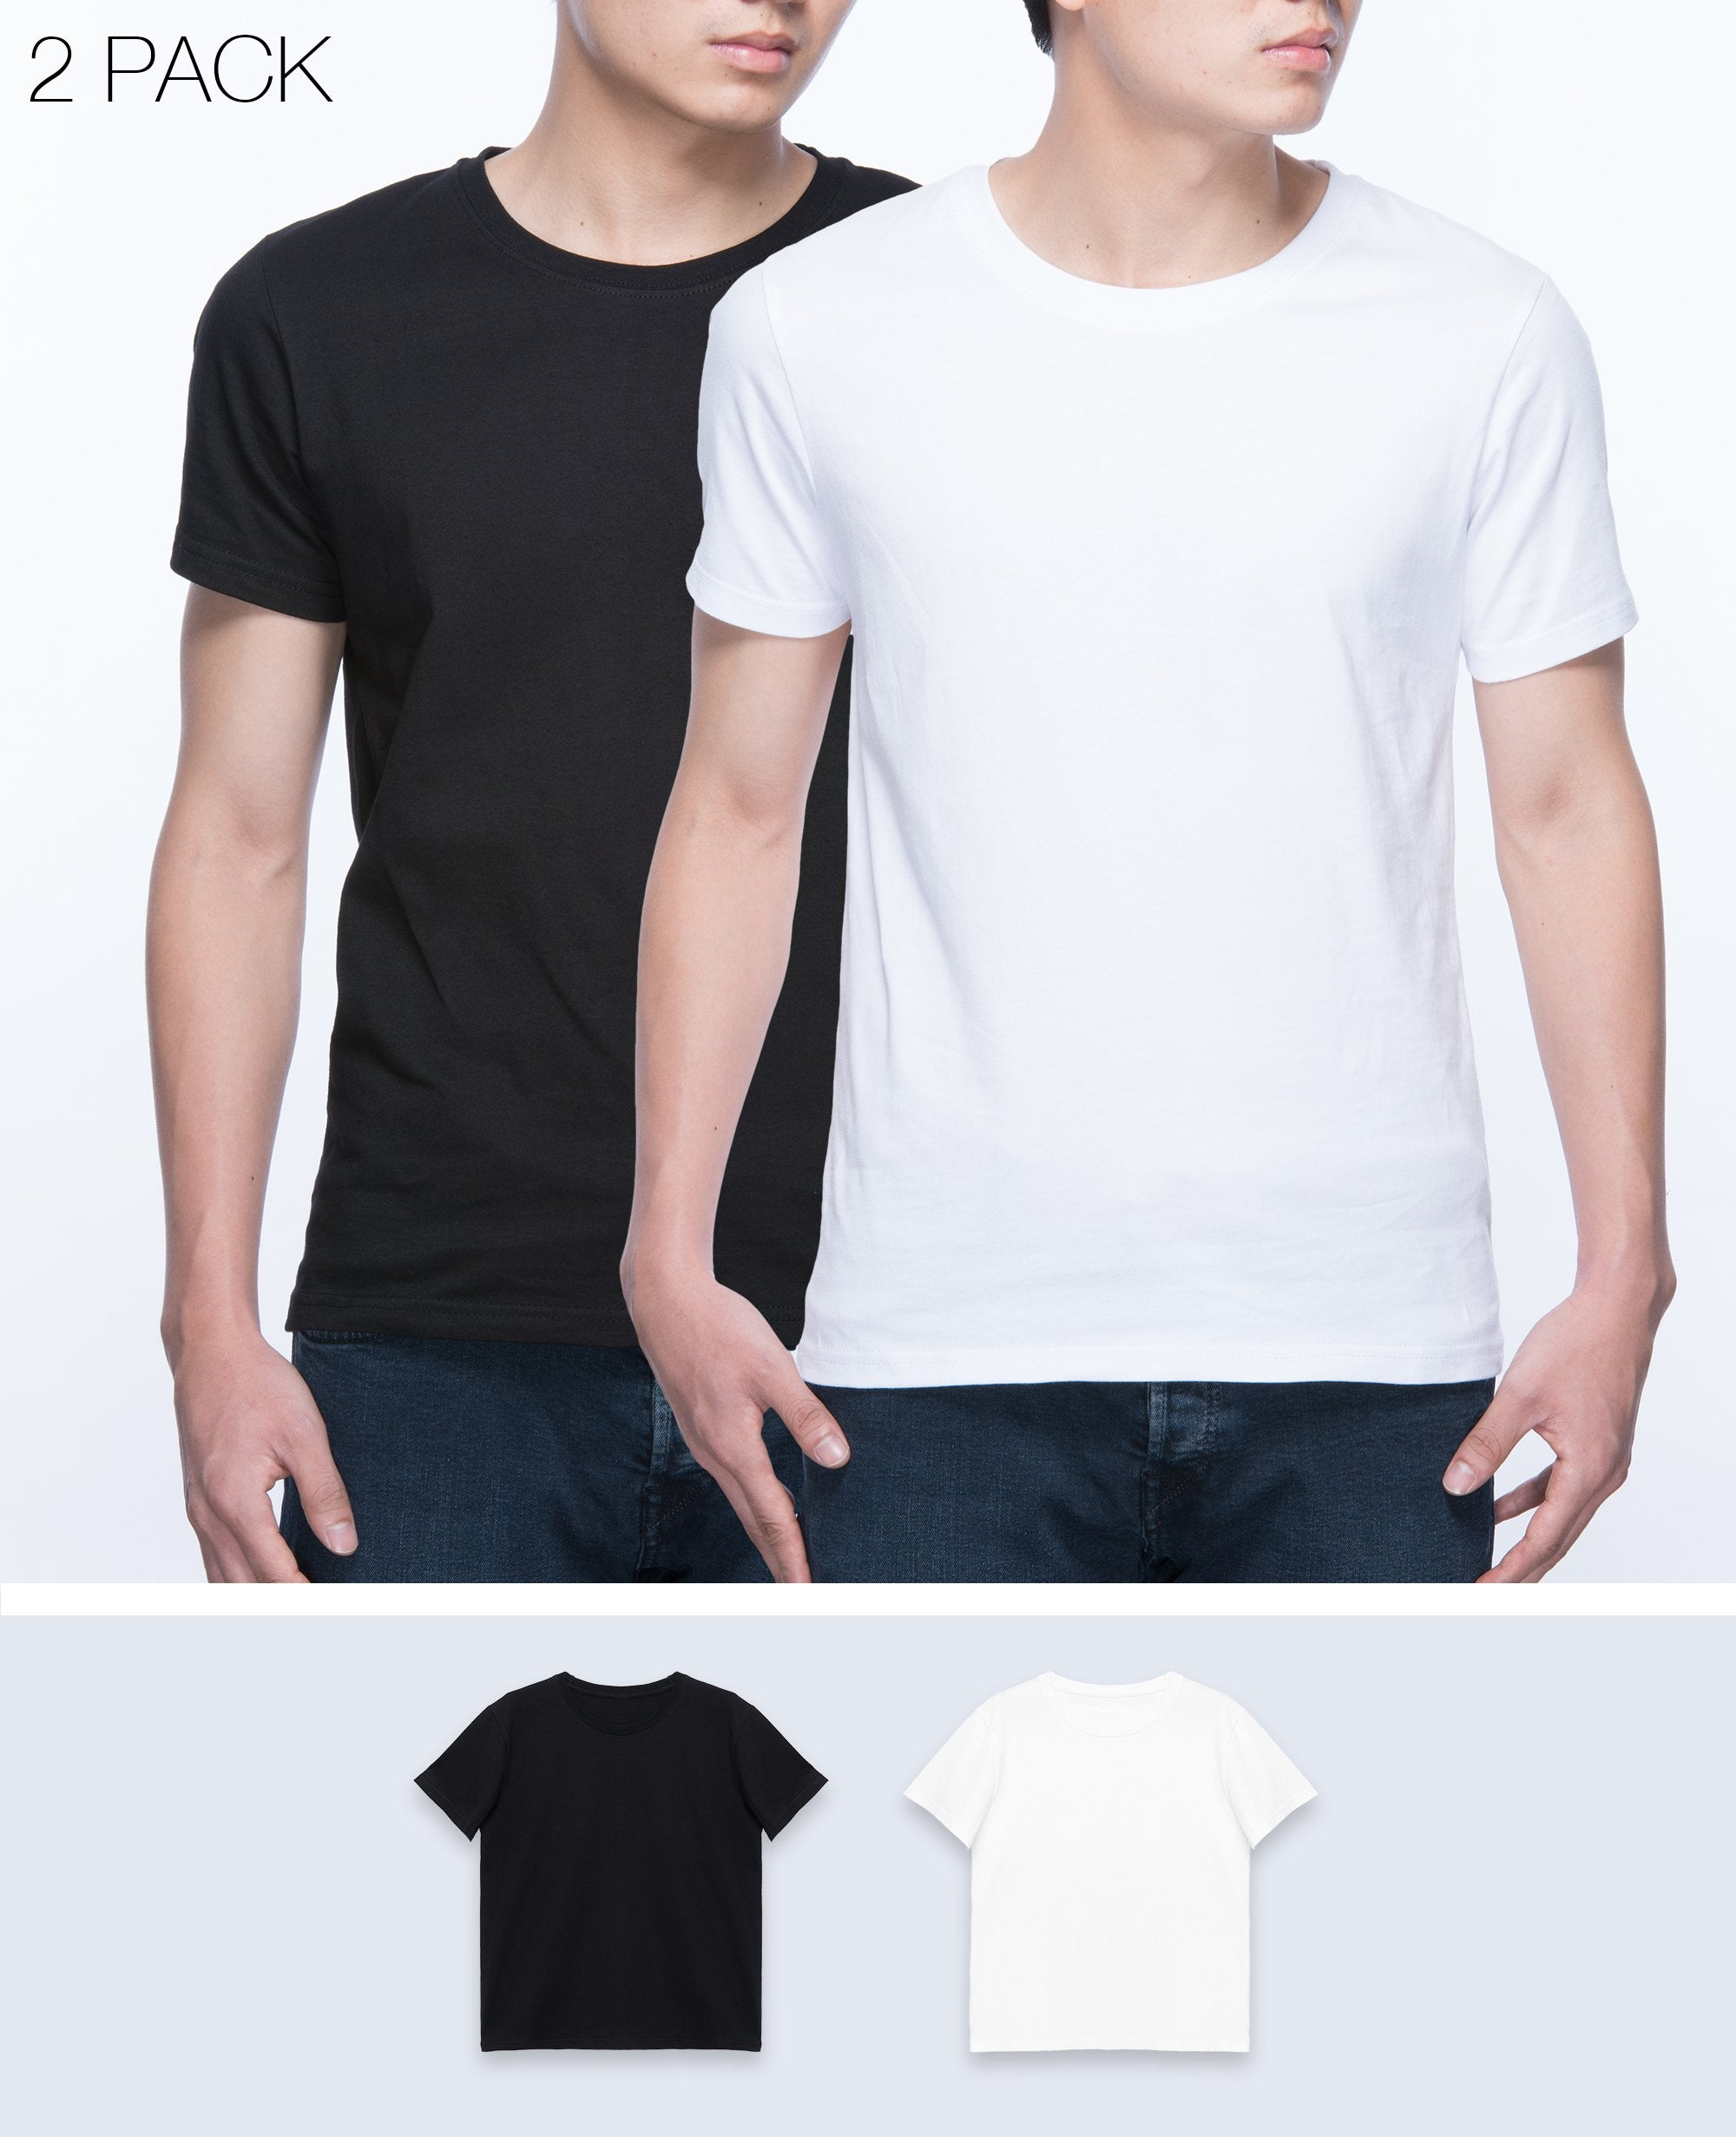 Basic T-shirt Men in Black / White 2 pack - T-Shirts - BRANMA - BRANMA